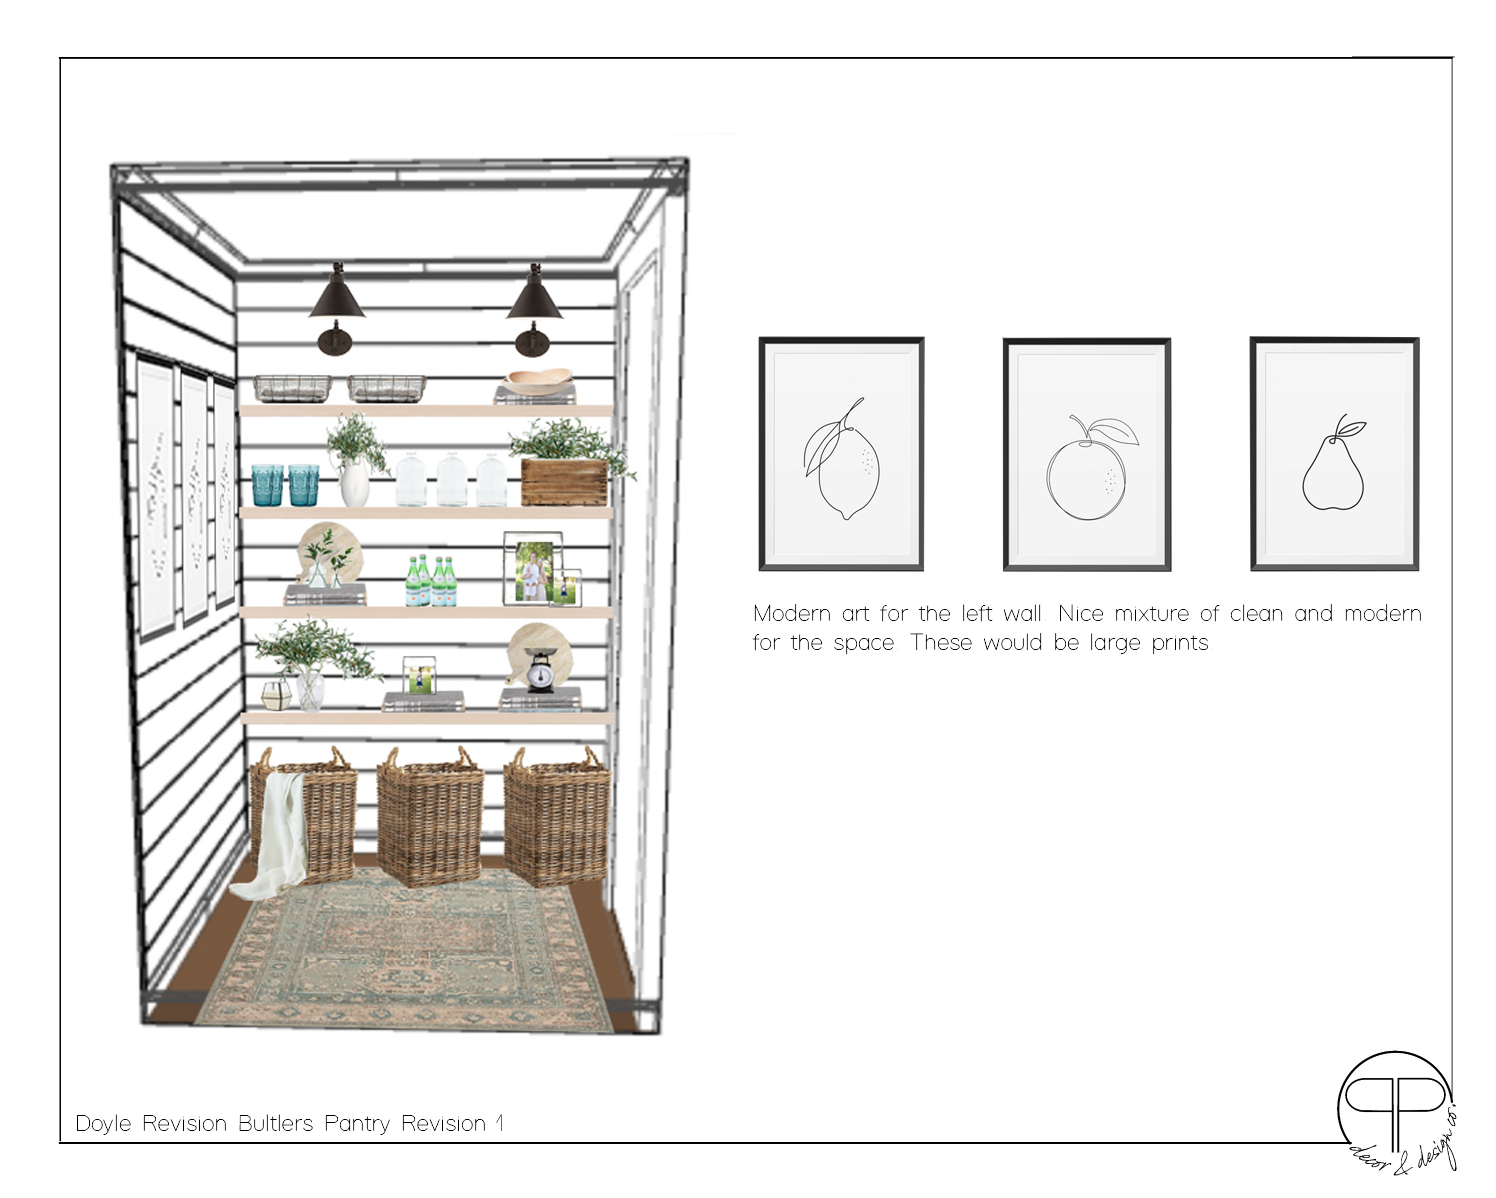 Doyle_Revision_1_Butlers_Pantry.jpg